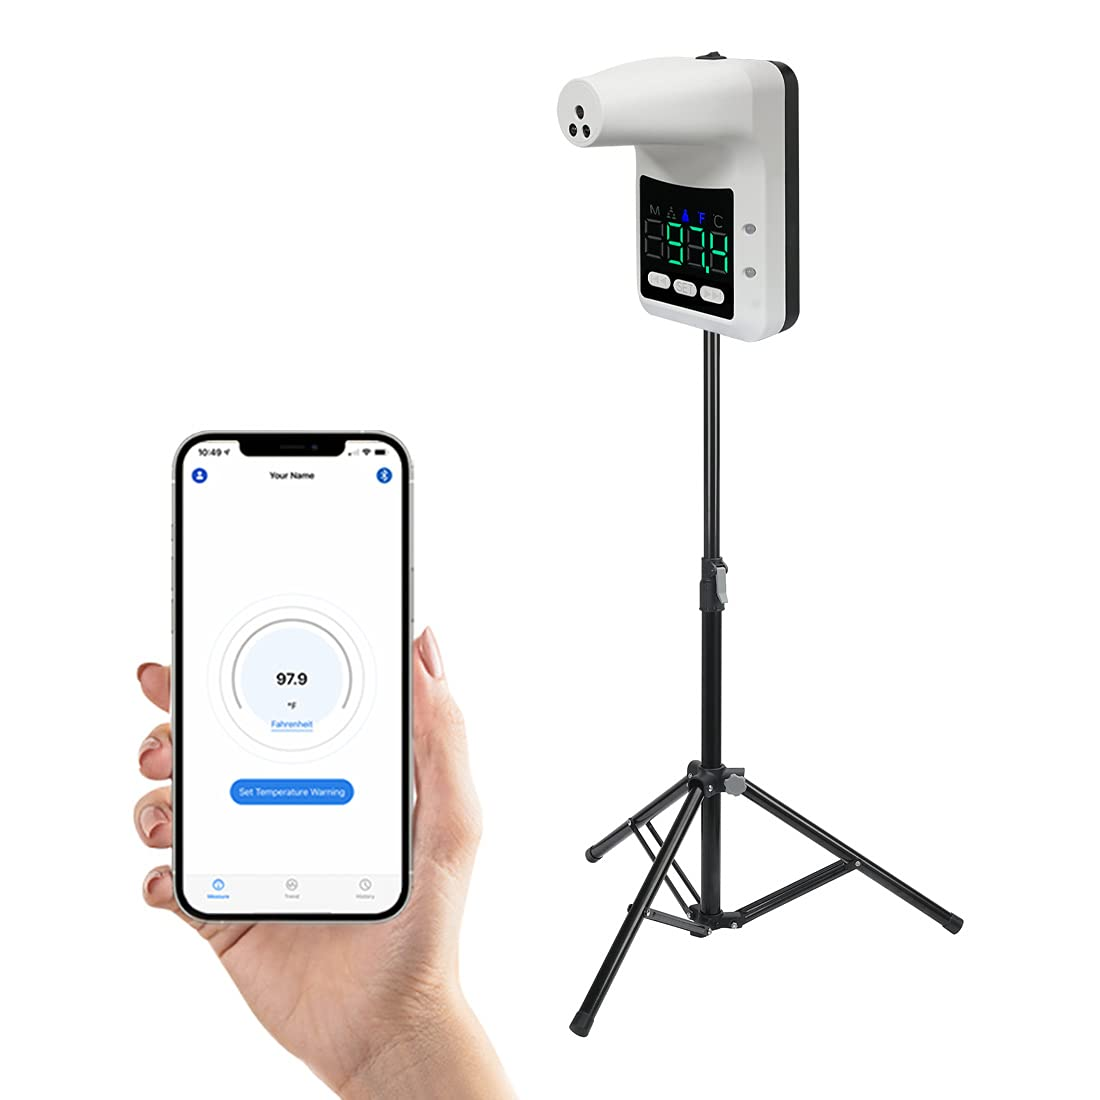 Wall-Mounted Body Thermometer with Cheap super special price Bluetooth Holder and Weekly update Tripod